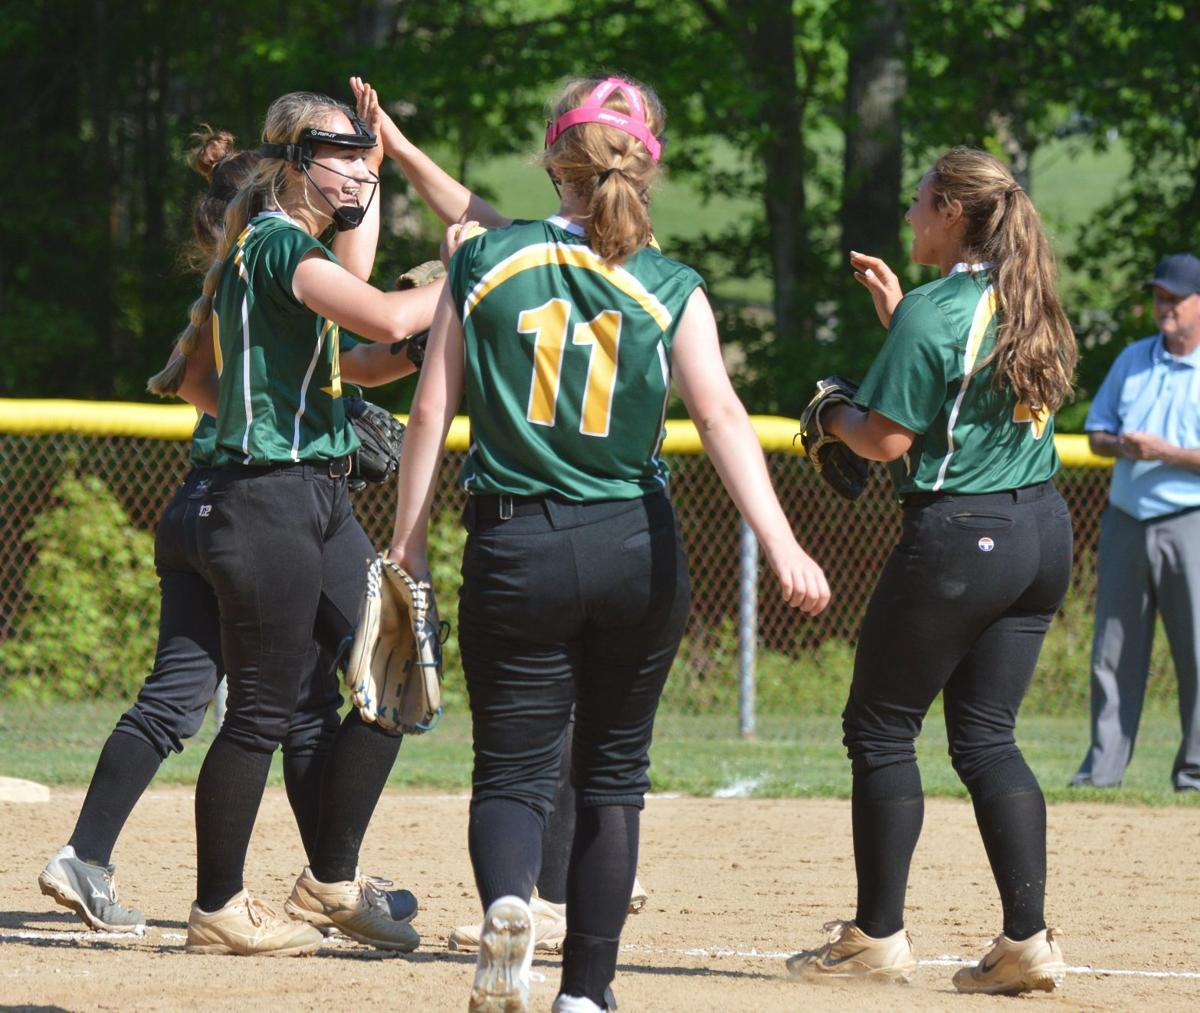 329e98cb2111 Lions capture first region championship. Four-run fourth backs Whiteford,  lifts Queen Anne's past the Indians